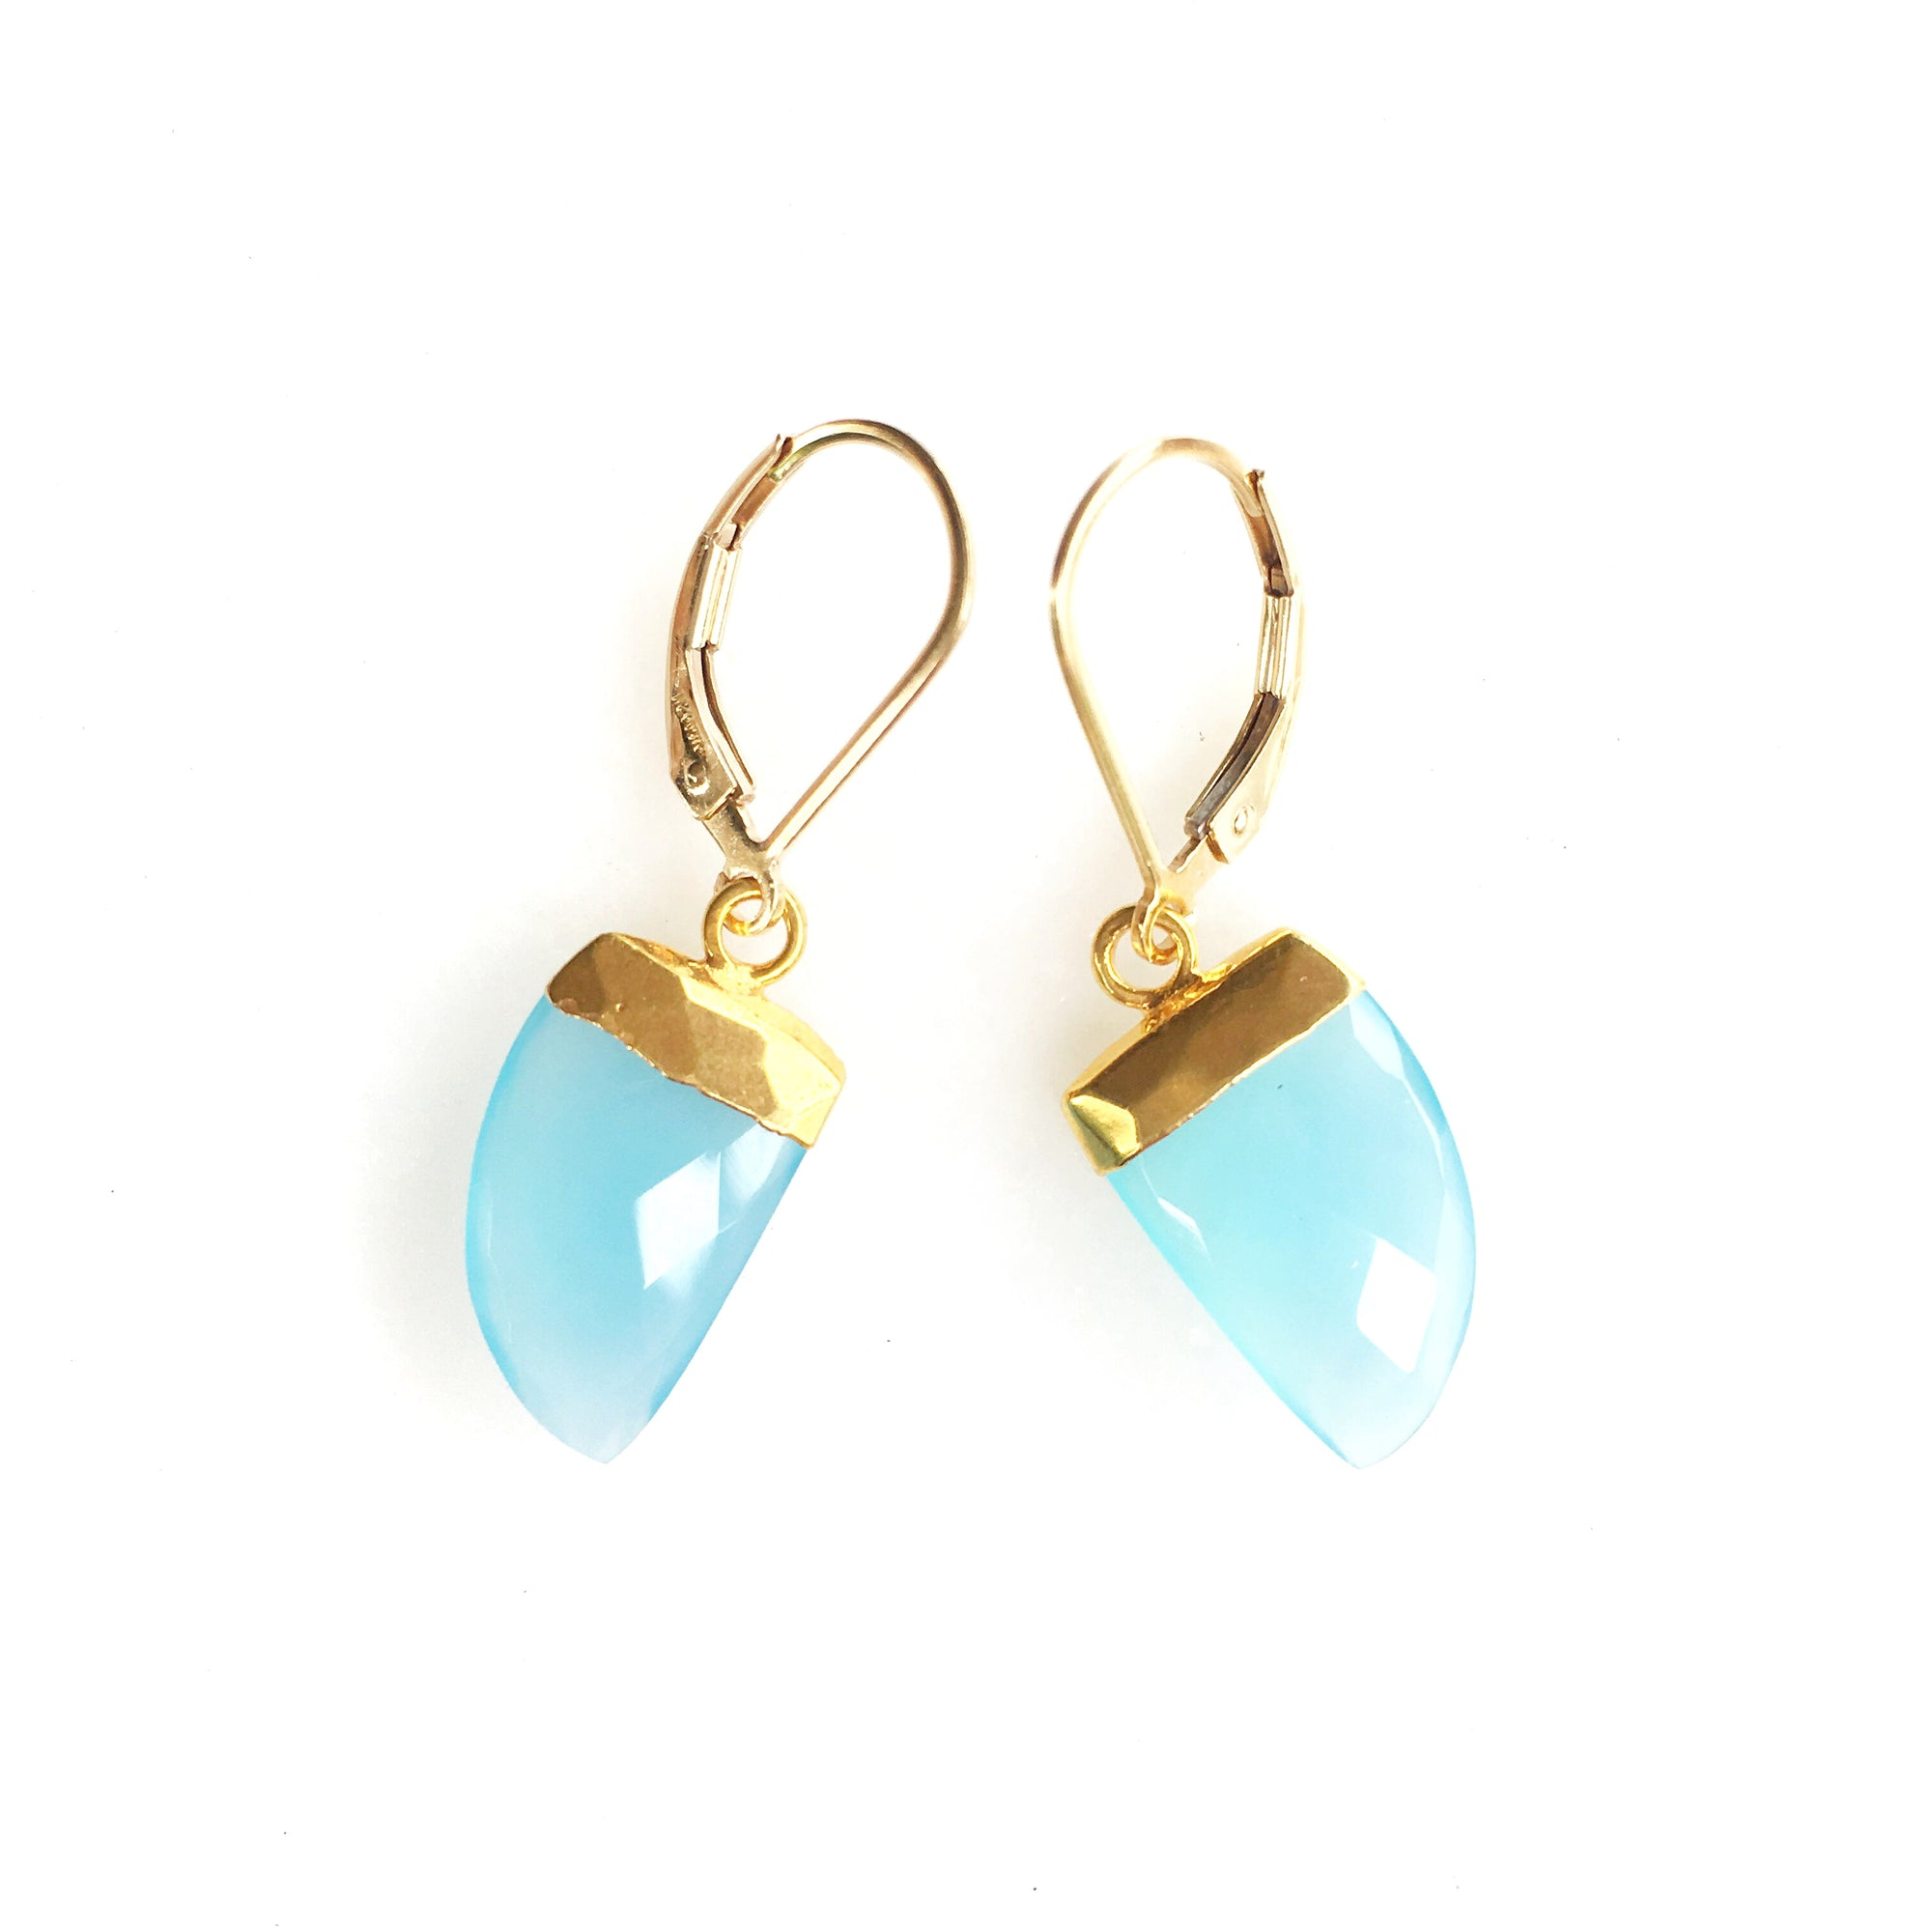 Aqua Chalecedony Horn Earrings